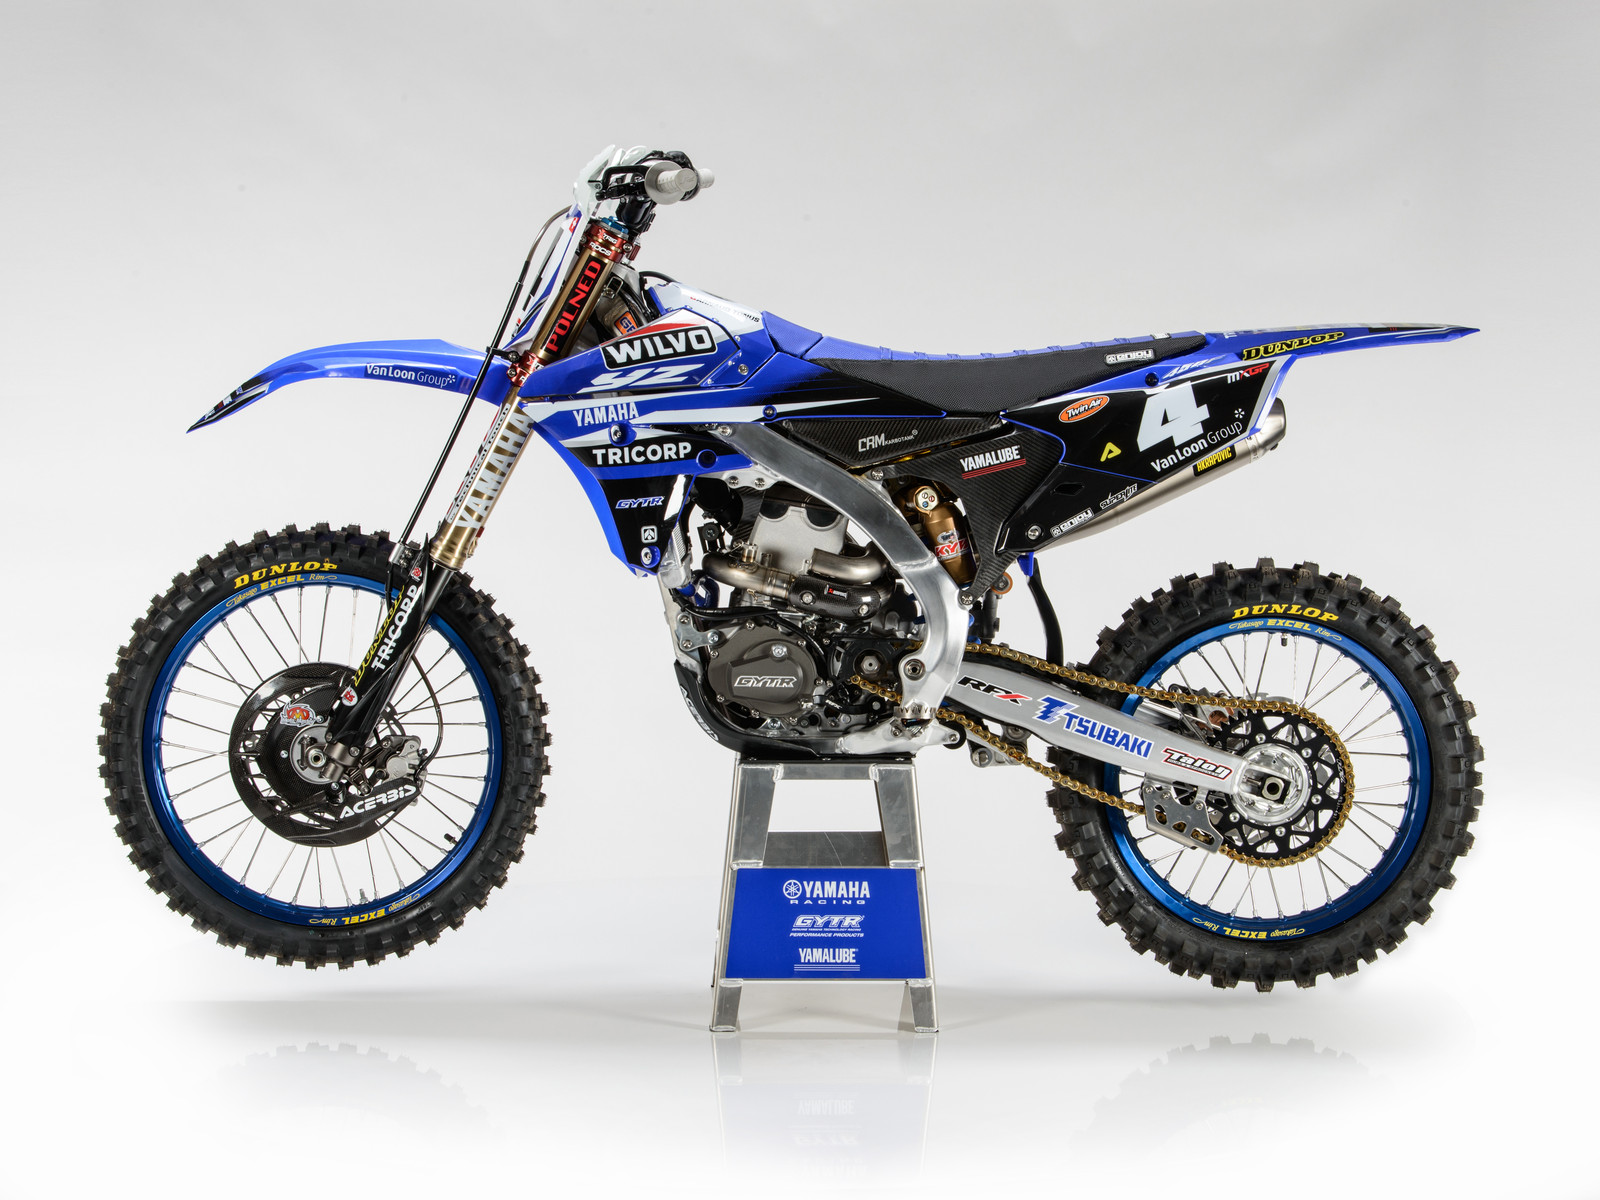 Arnaud Tonus' 2017 WILVO Yamaha YZ450FM - First Look: 2017 Monster Energy & Wilvo Yamaha MXGP Teams - Motocross Pictures - Vital MX